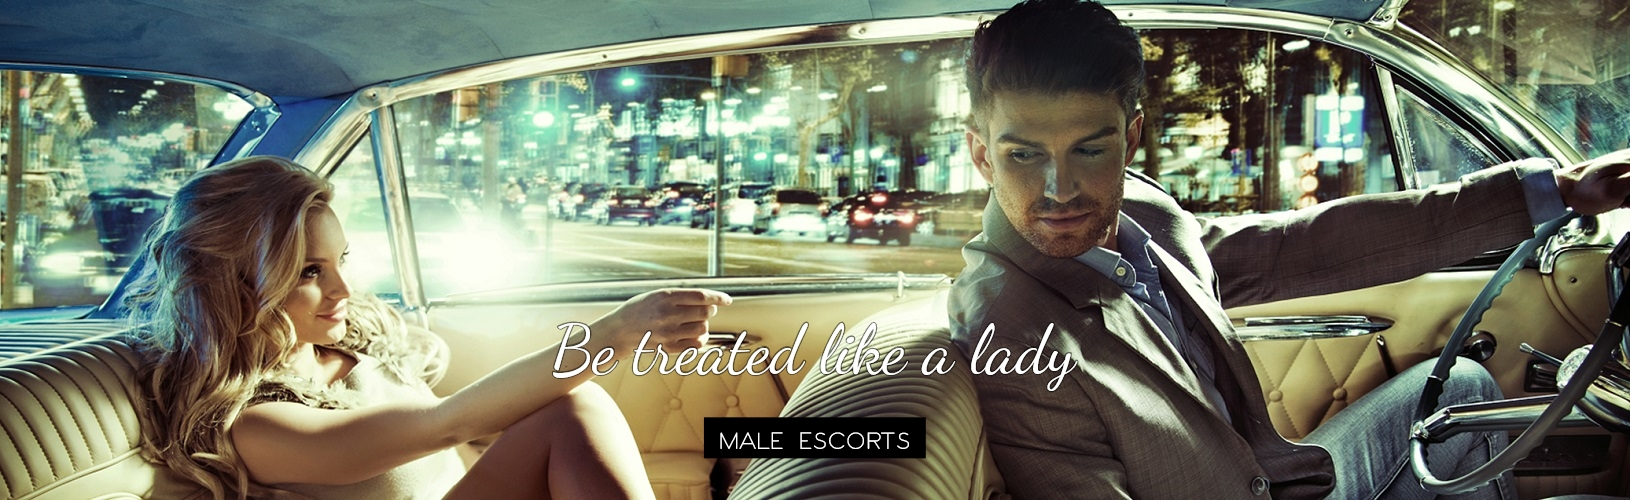 Indepedent private male escorts Australia